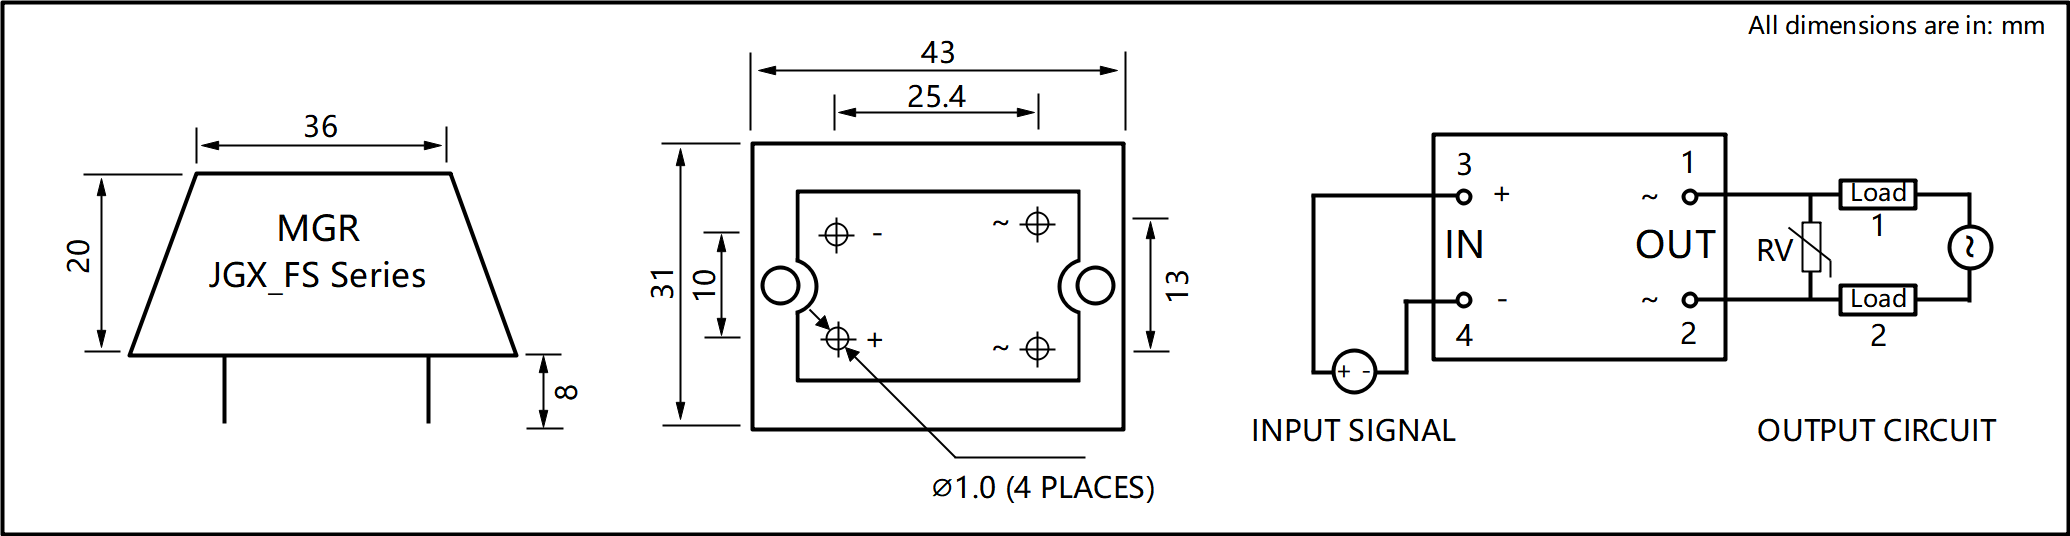 JGX_F Series Cast Aluminum-zinc Alloy Housing PCB Mount Solid State Relay Circuit Wring Diagram